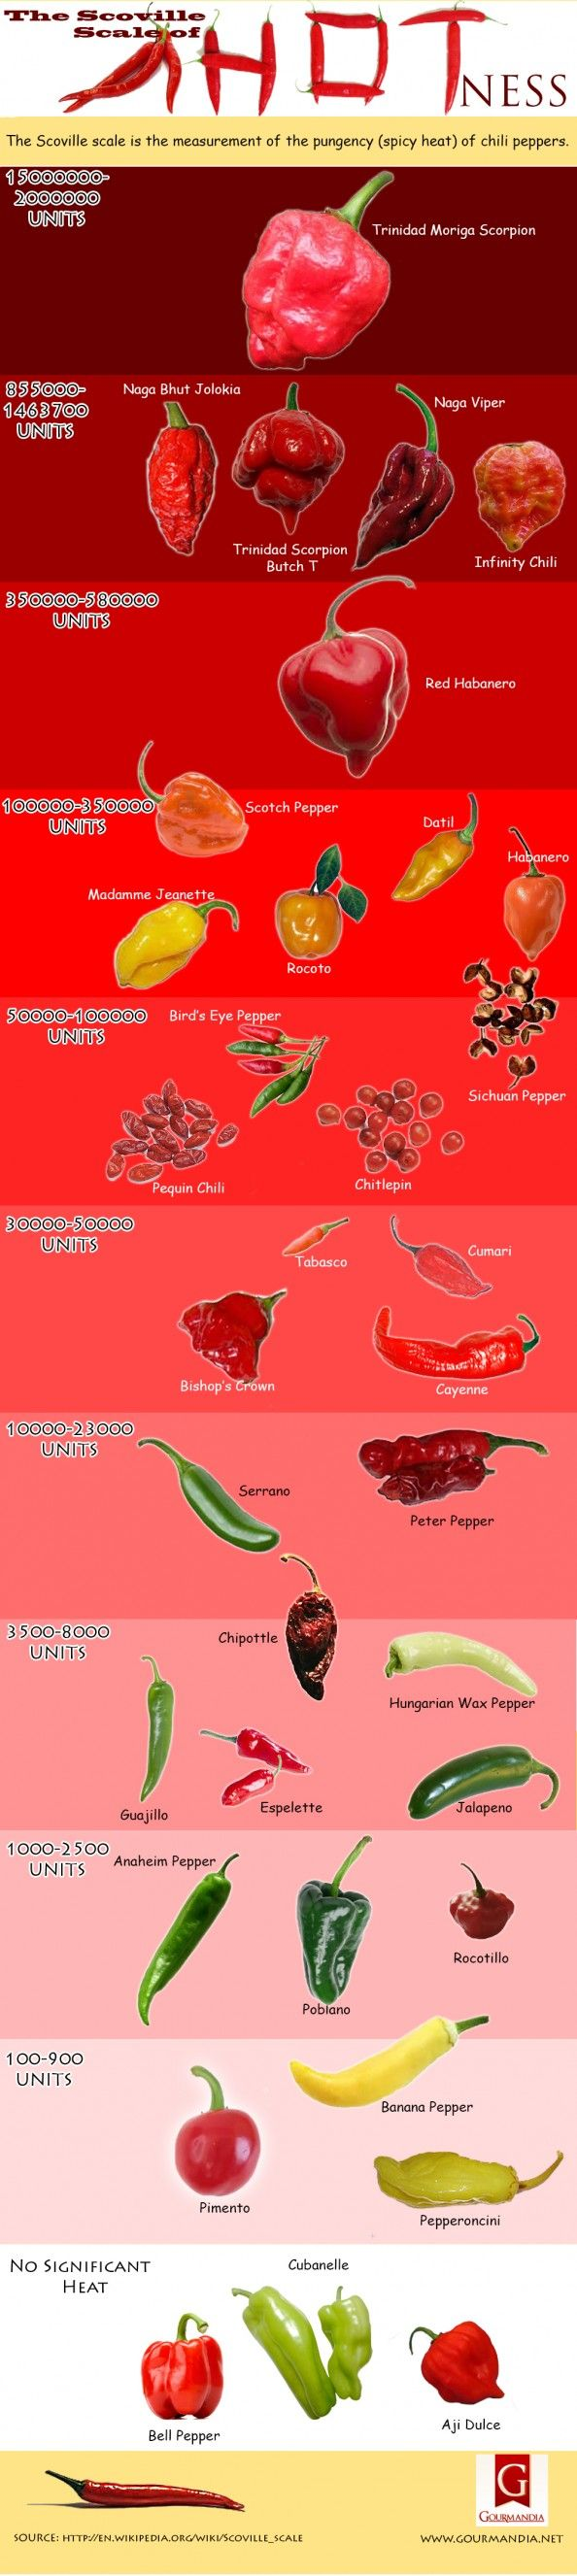 The Scoville Scale of Hotness #chili #peppers